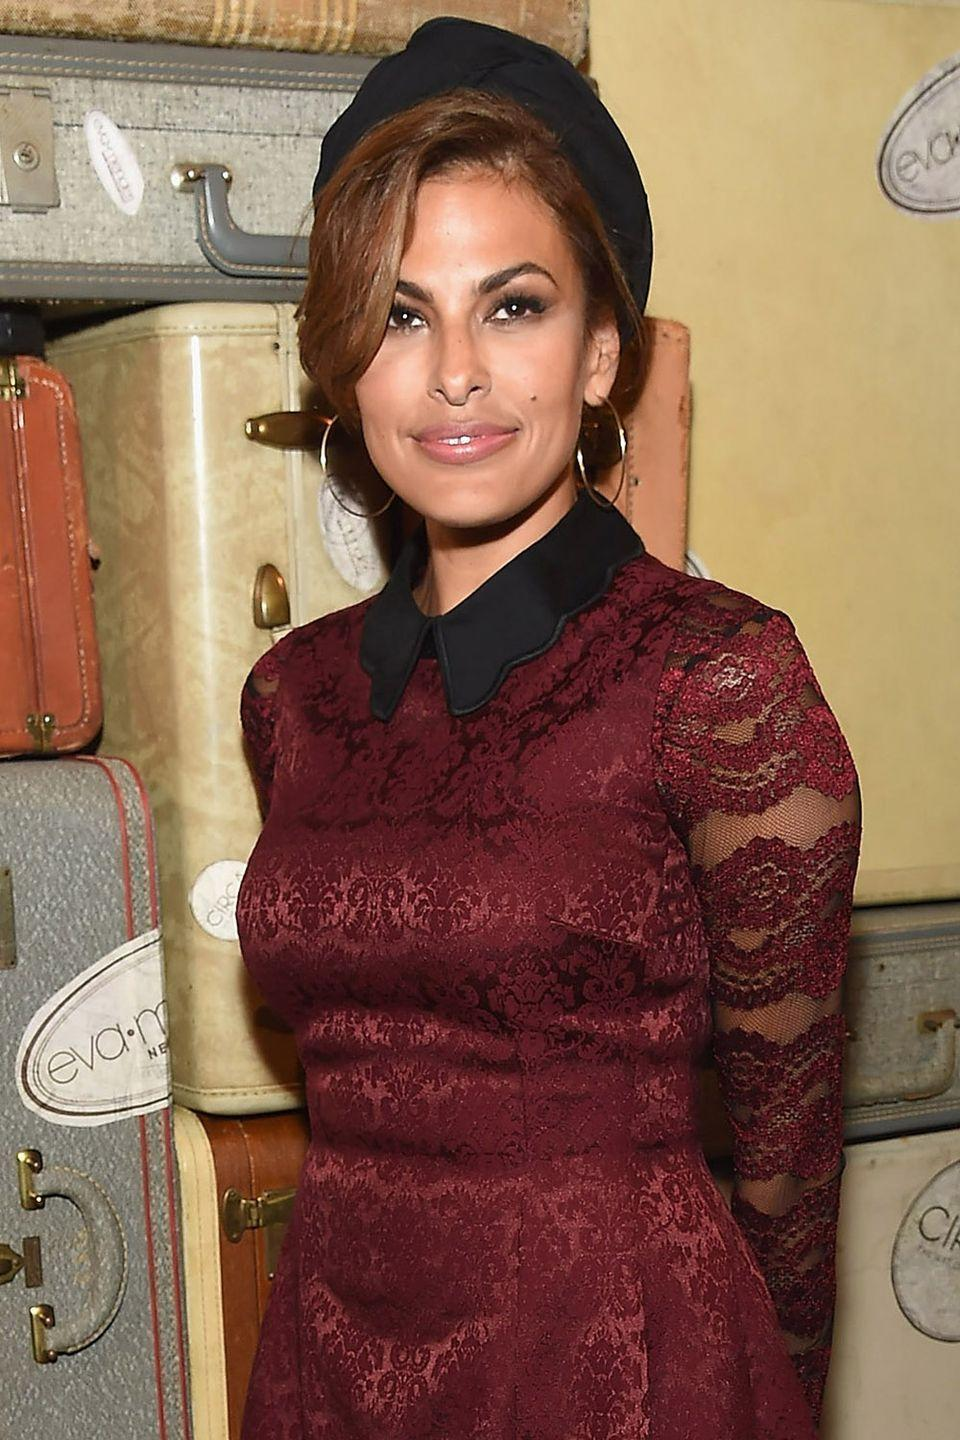 """<p>The actress entered rehab in 2008 and has been sober ever since. She opens about substance abuse addiction in her <a href=""""http://www.interviewmagazine.com/film/eva-mendes/#_"""" rel=""""nofollow noopener"""" target=""""_blank"""" data-ylk=""""slk:Interview"""" class=""""link rapid-noclick-resp"""">Interview</a> cover story that followed that same year.</p>"""